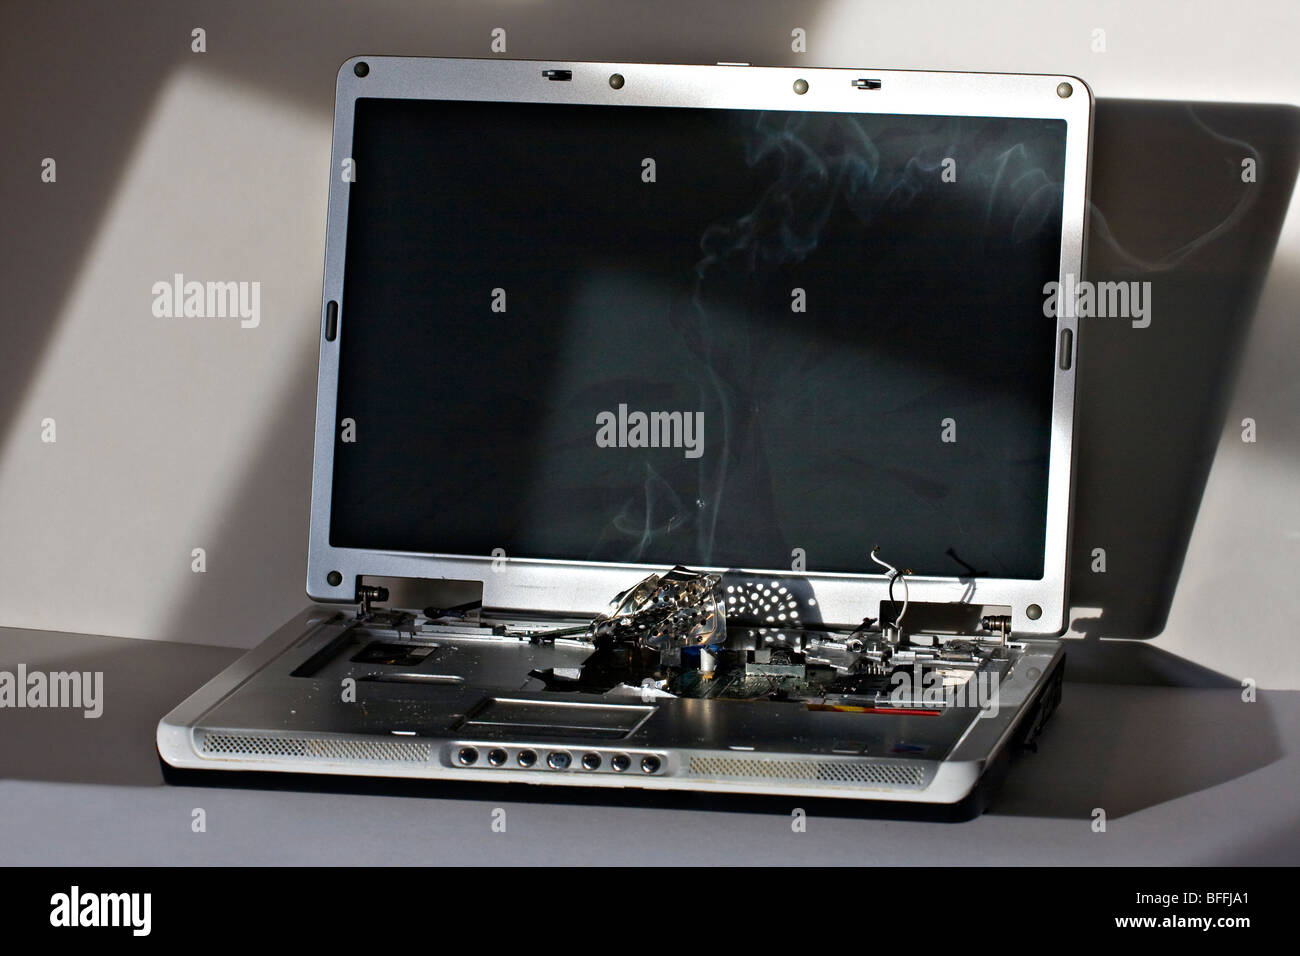 how to fix a cracked hp computer screen